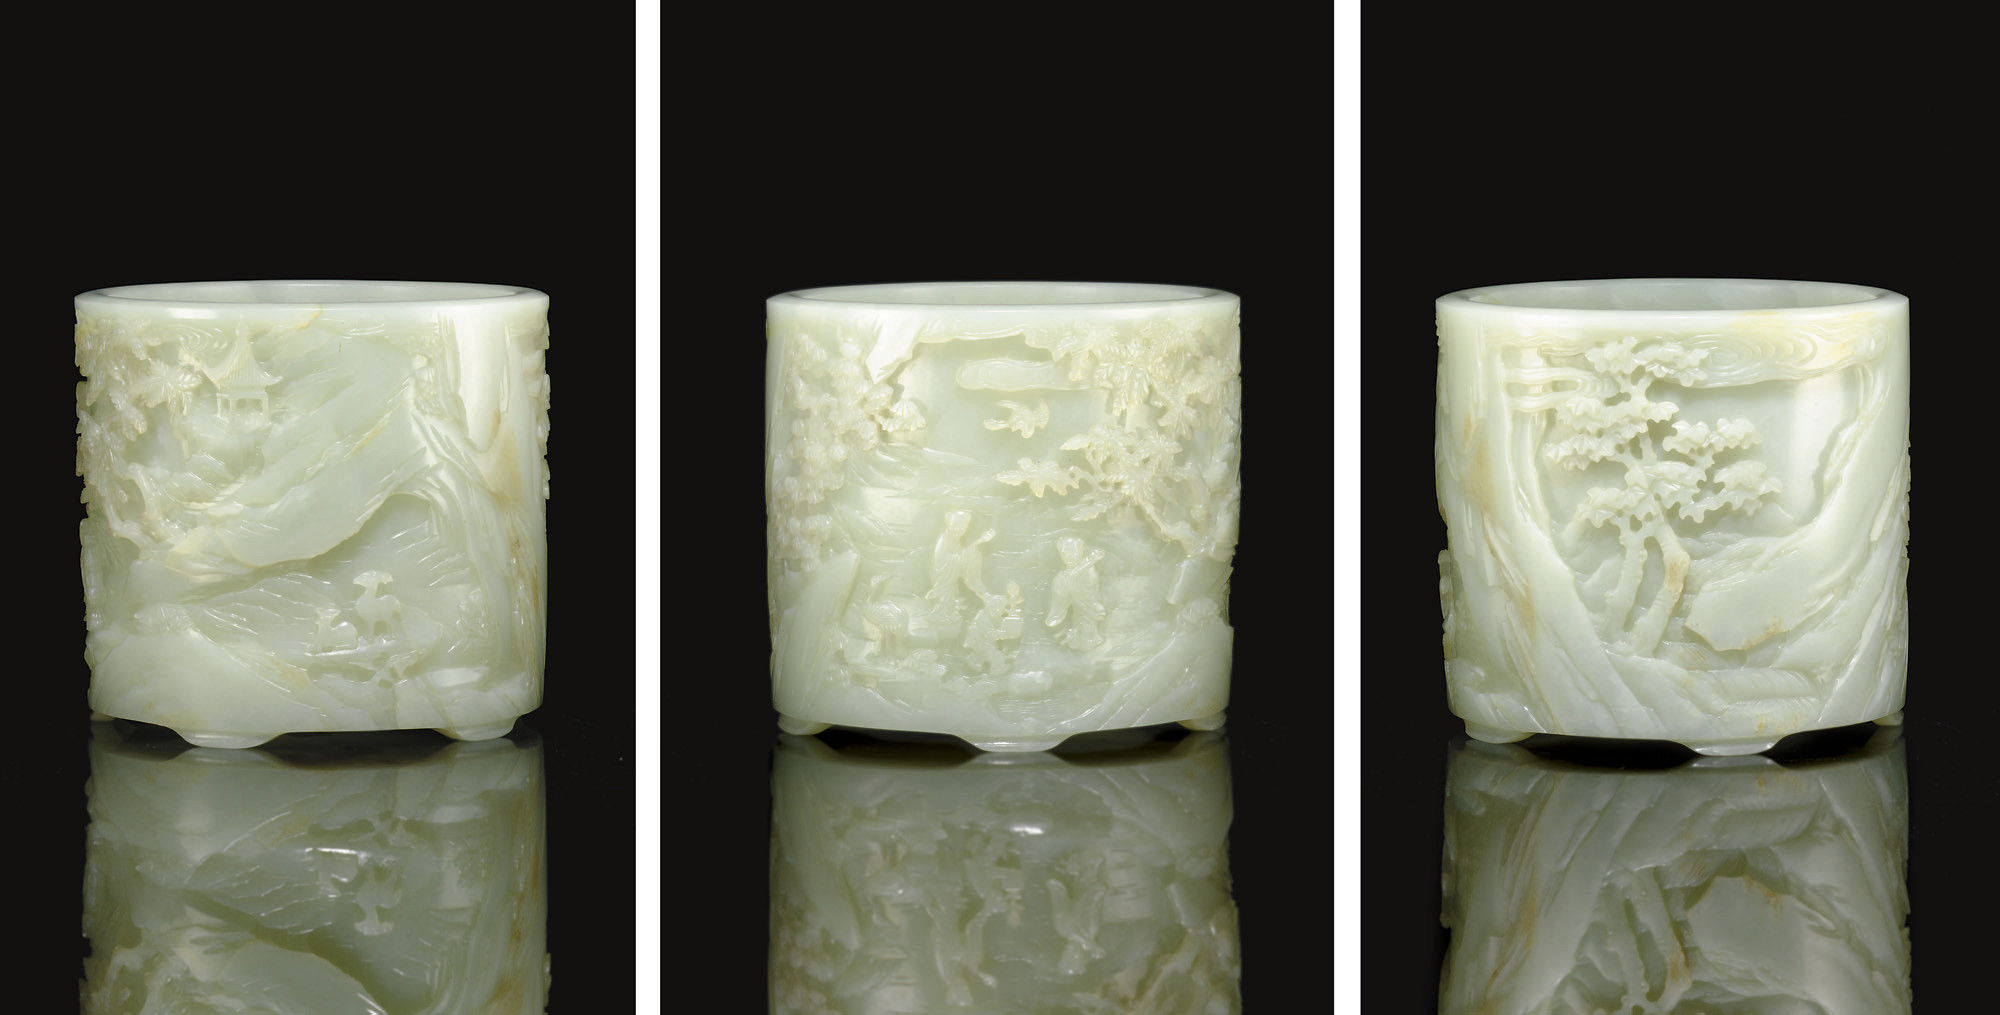 A MAGNIFICENT WHITE JADE BRUSH